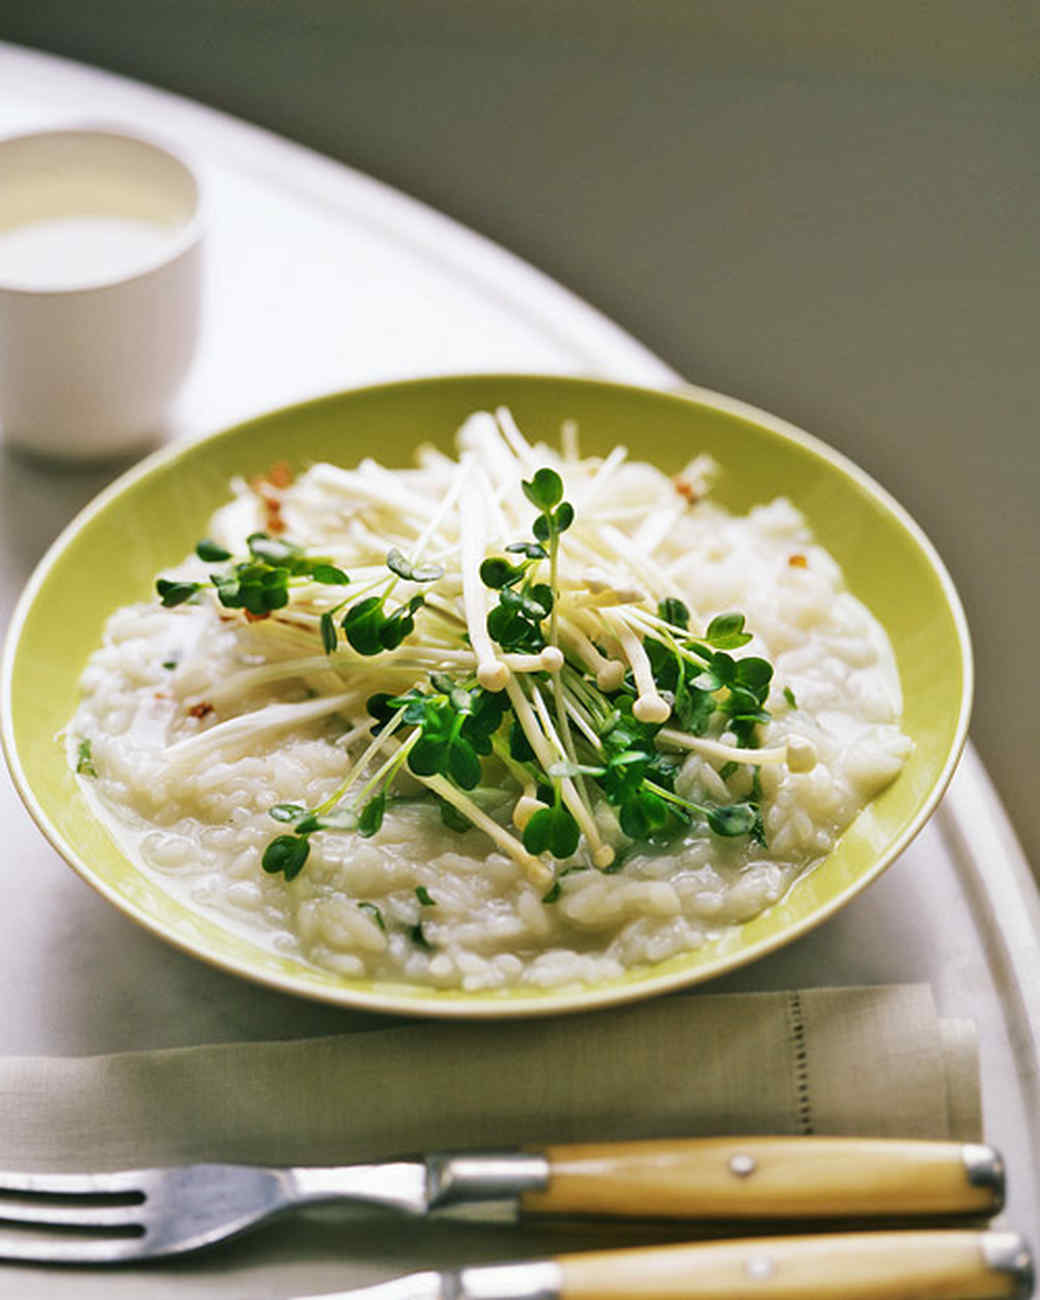 Martha Stewart's Japanese Risotto